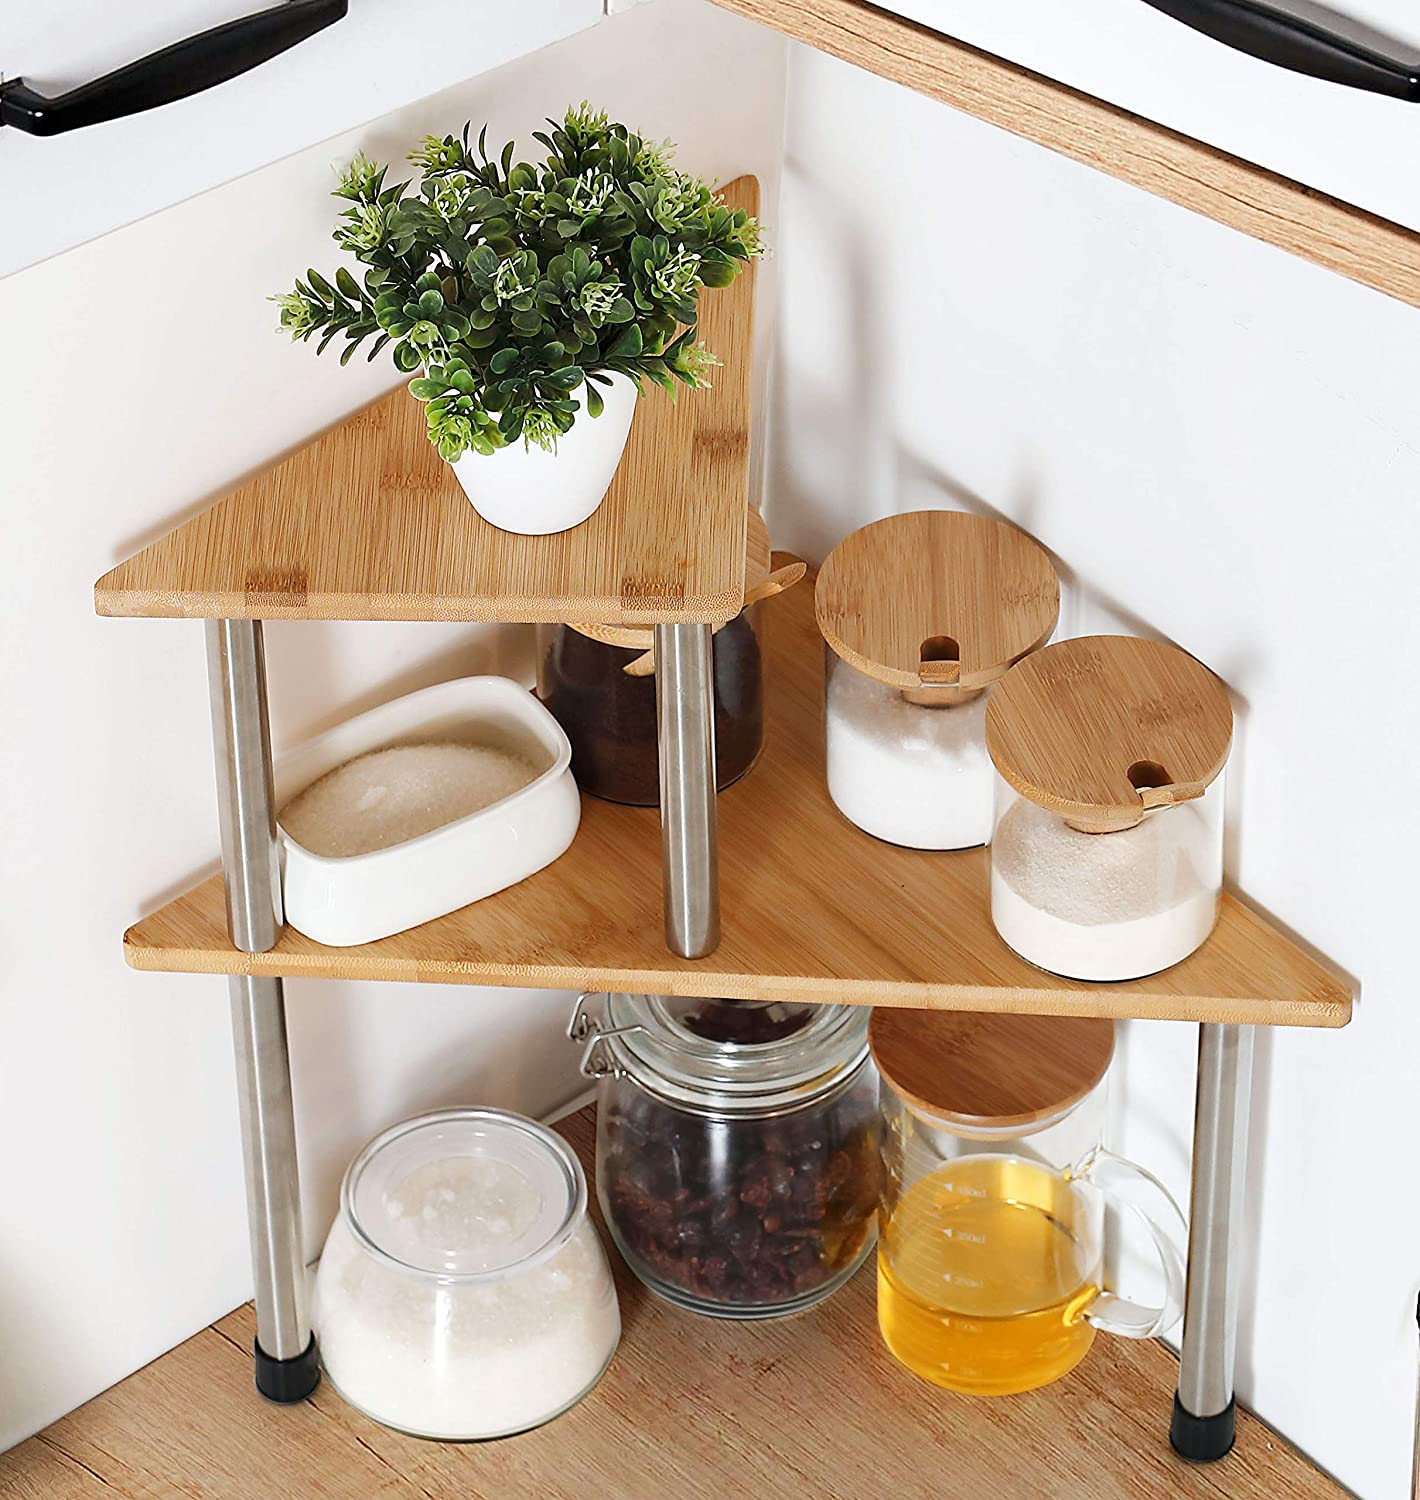 Amazon Com Hynawin Corner Shelves 2 Tier Spice Rack Standing Pantry Cabinet Storage Shelf Creative Adjustable Style Compact Bamboo Counter Shelving Best Home Décor For Kitchen Bathroom Bedroom Triangle Home Kitchen